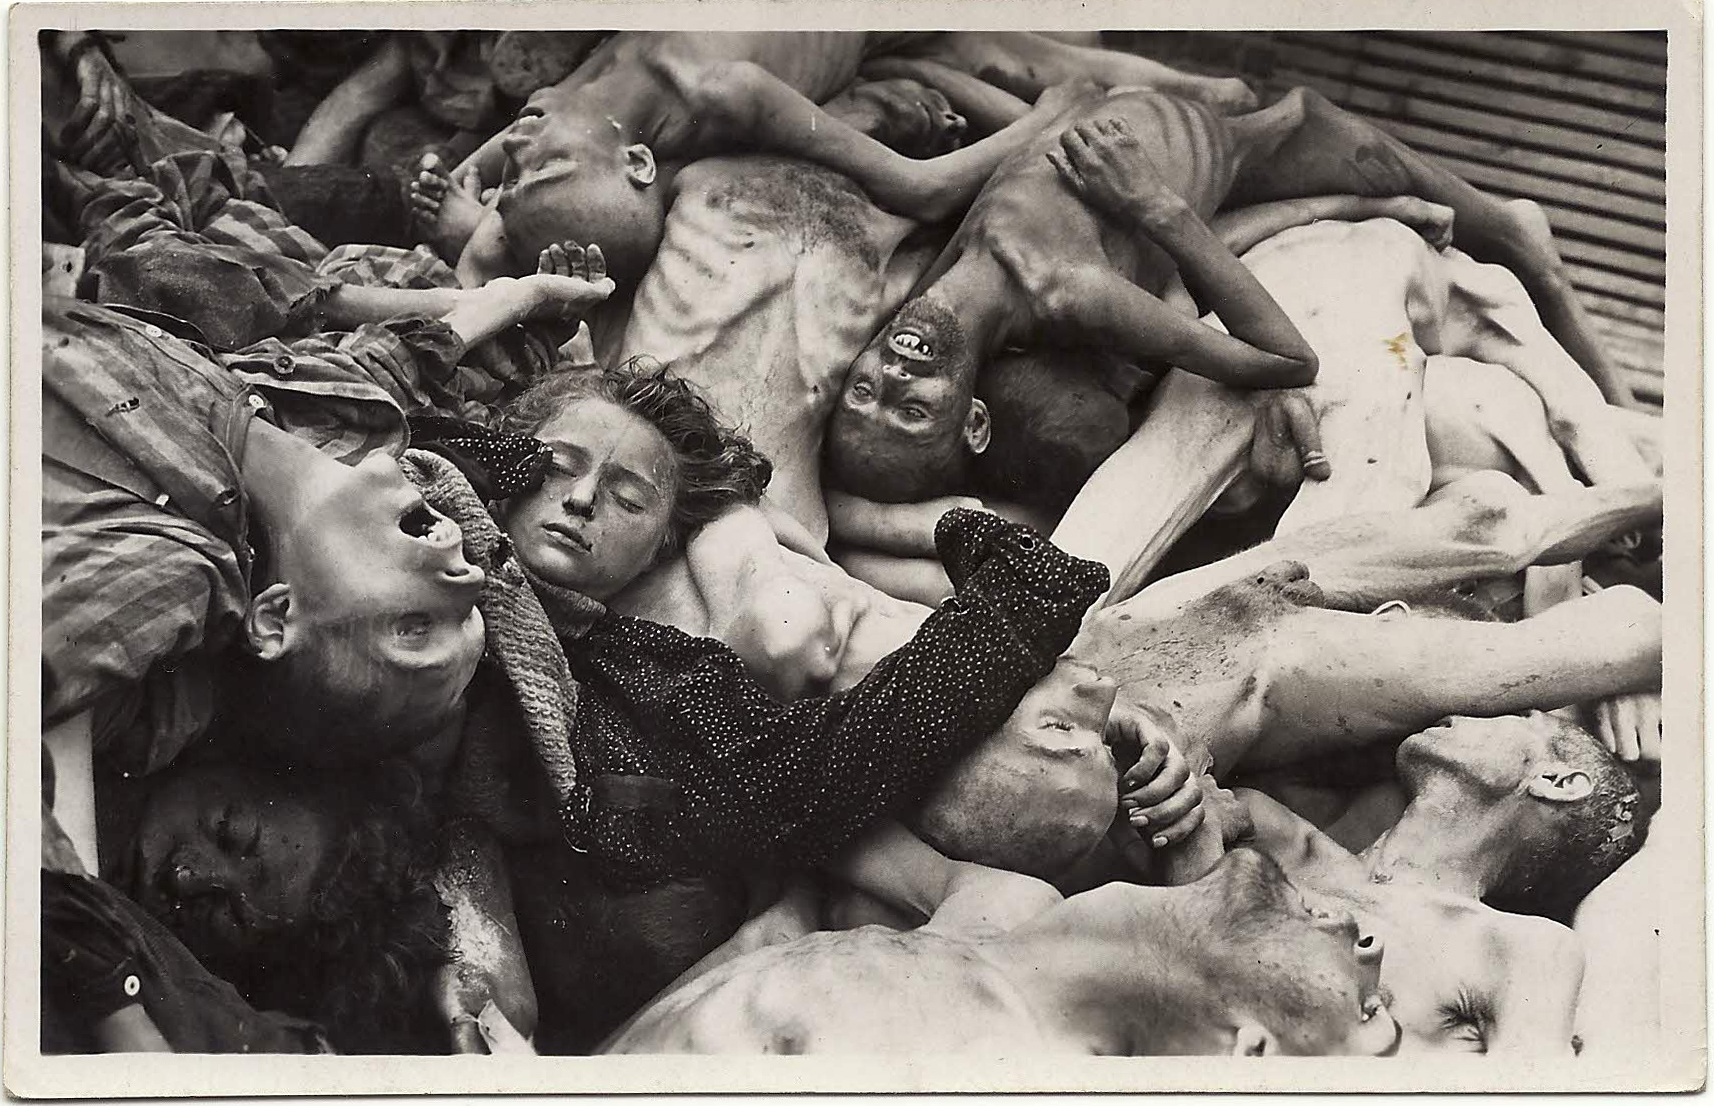 photos of nude jewish girls concentration camps